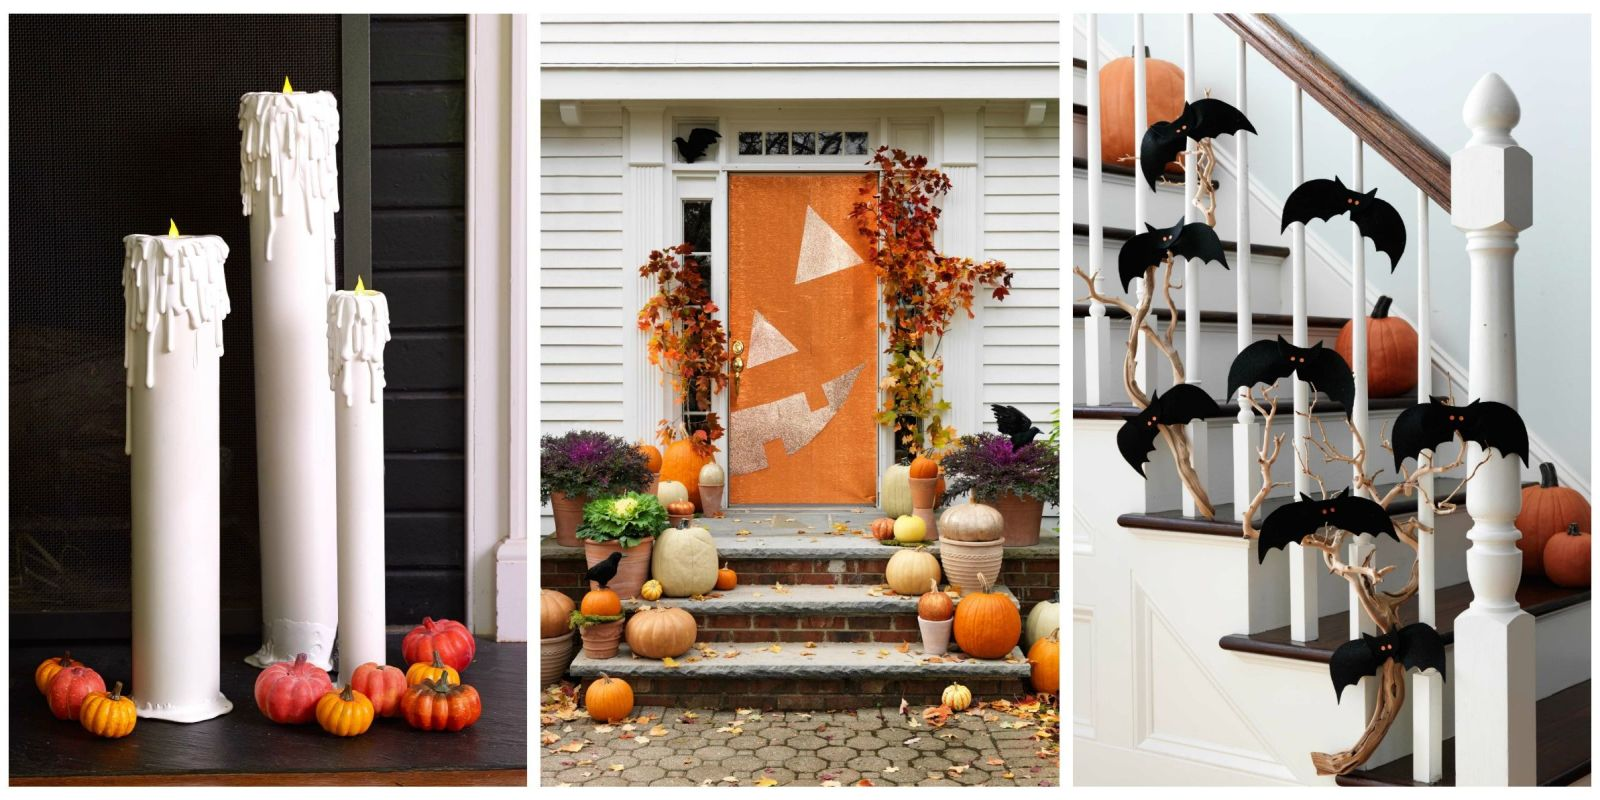 40 easy diy halloween decoration ideas homemade halloween decor projects - Homemade halloween decorations ...